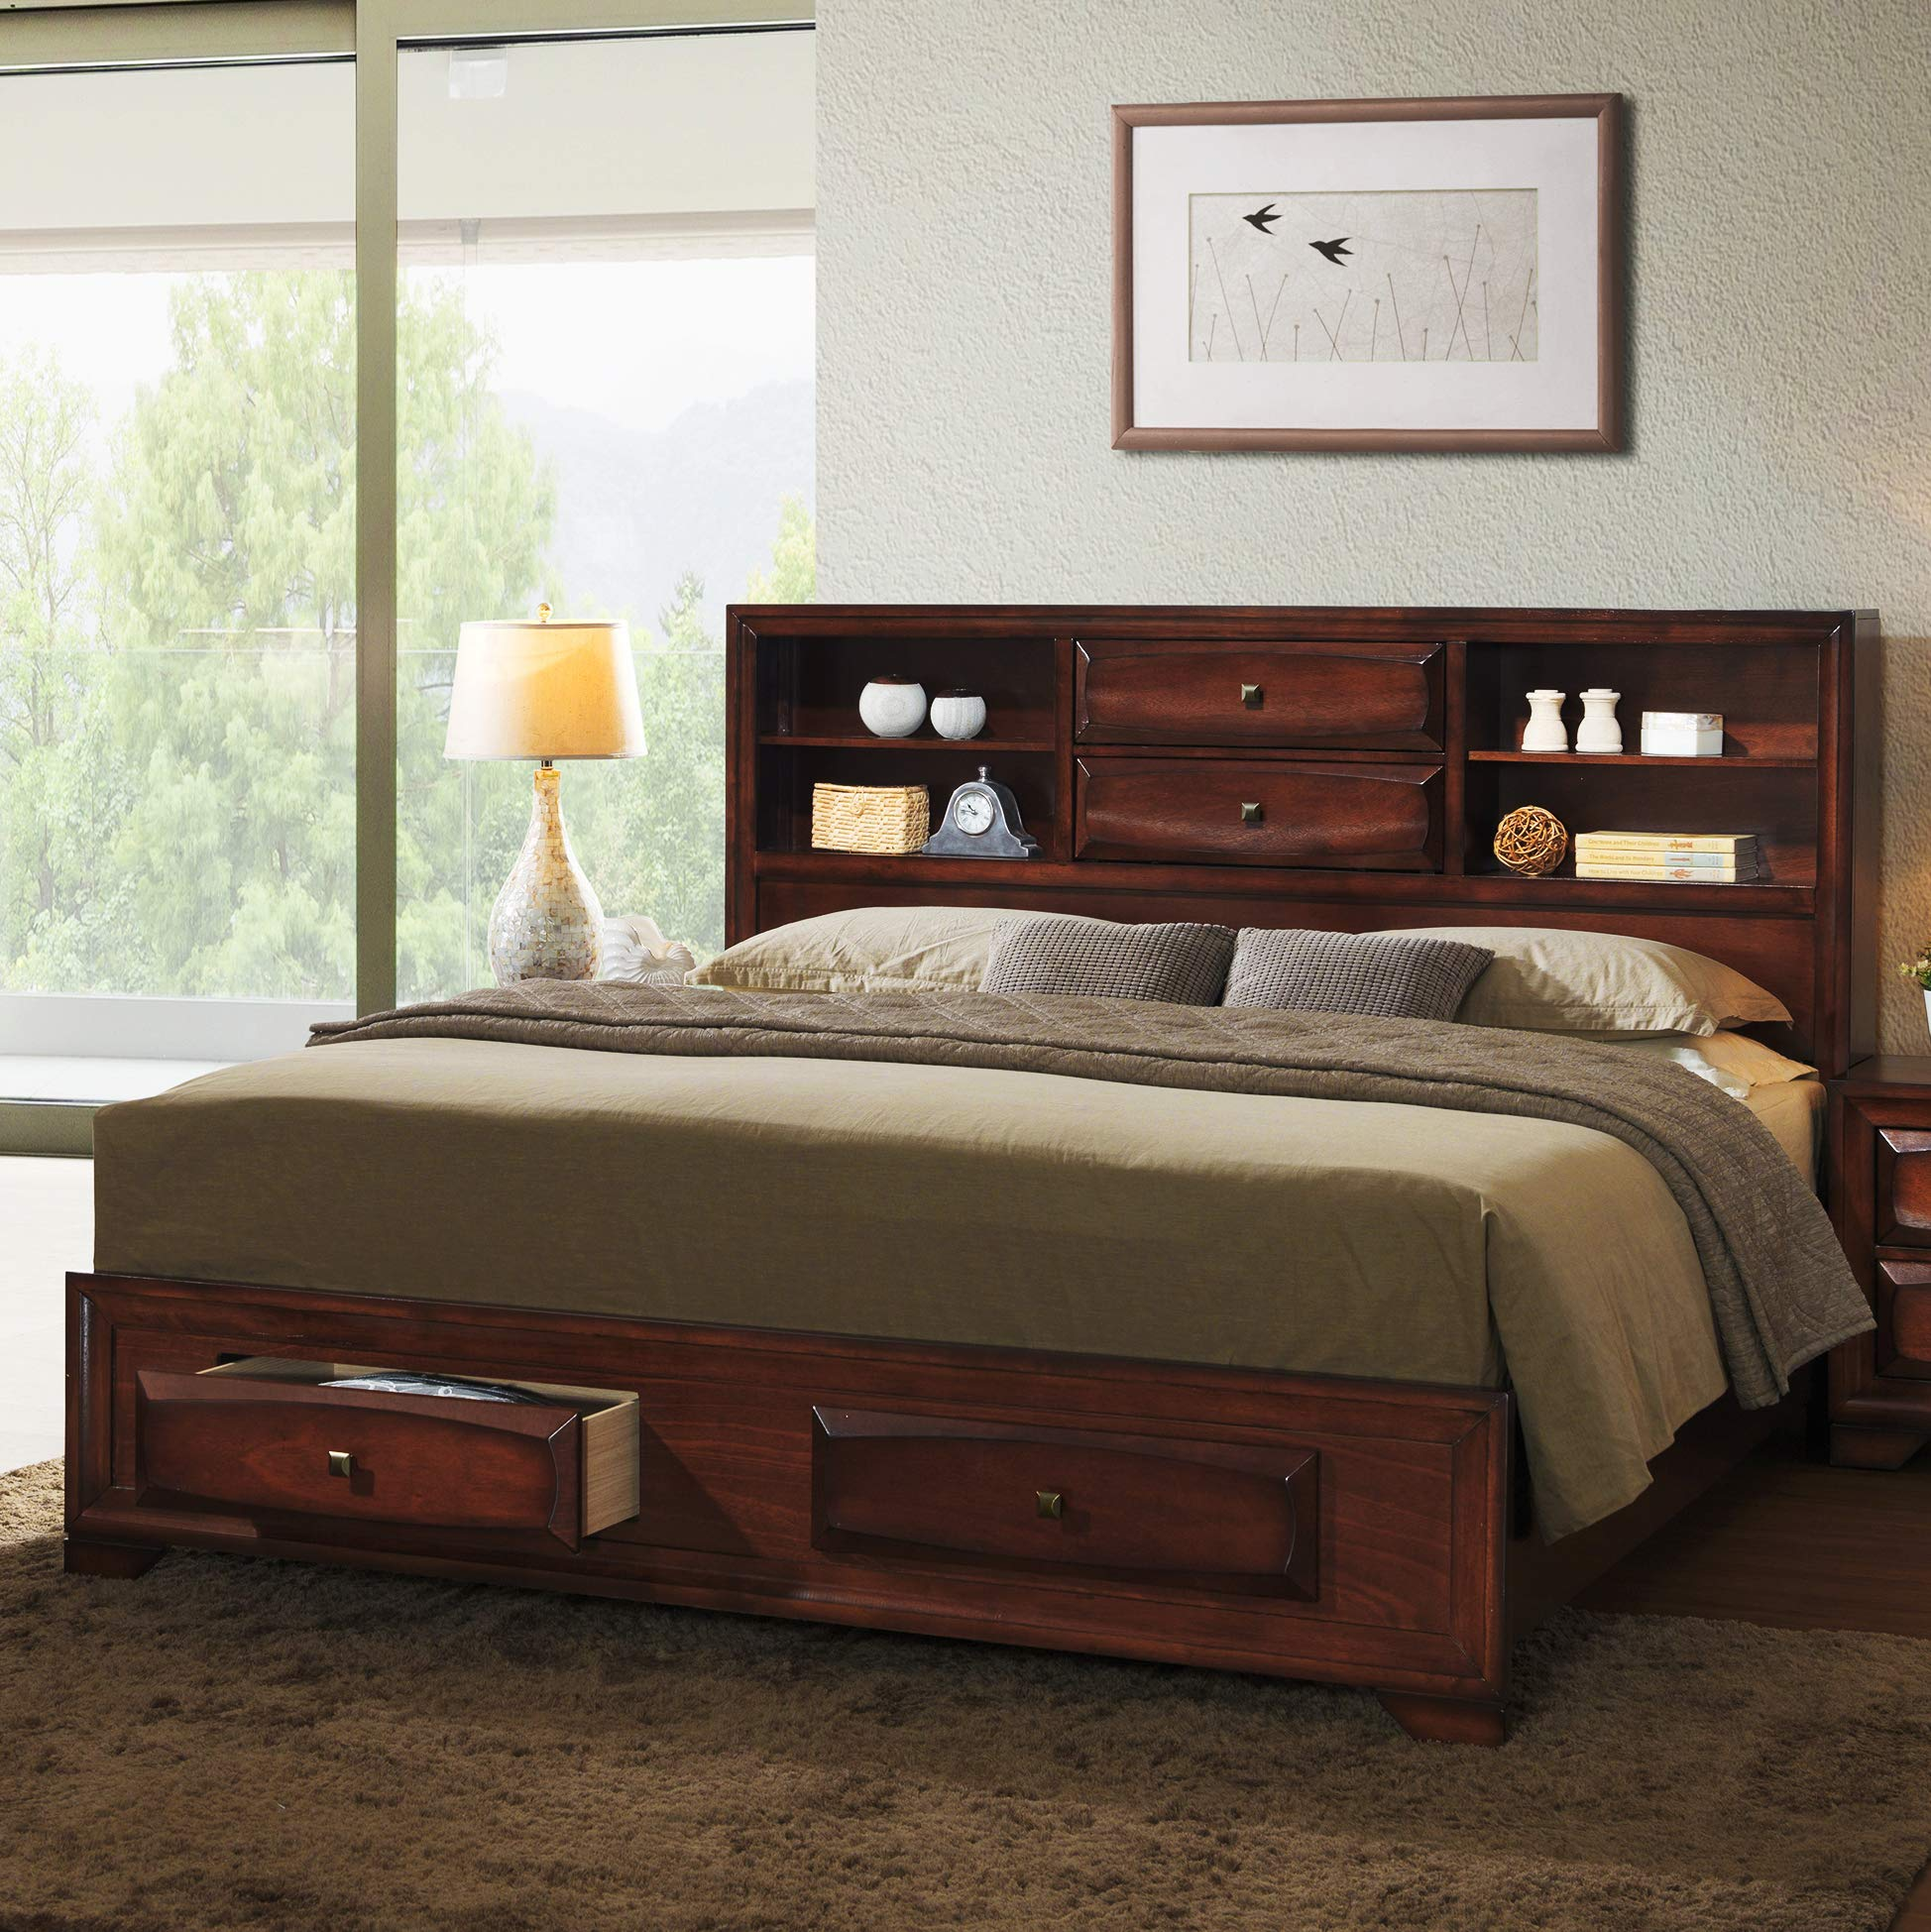 Roundhill Furniture Asger Wood Platform Bed, King, Antique Oak Finish